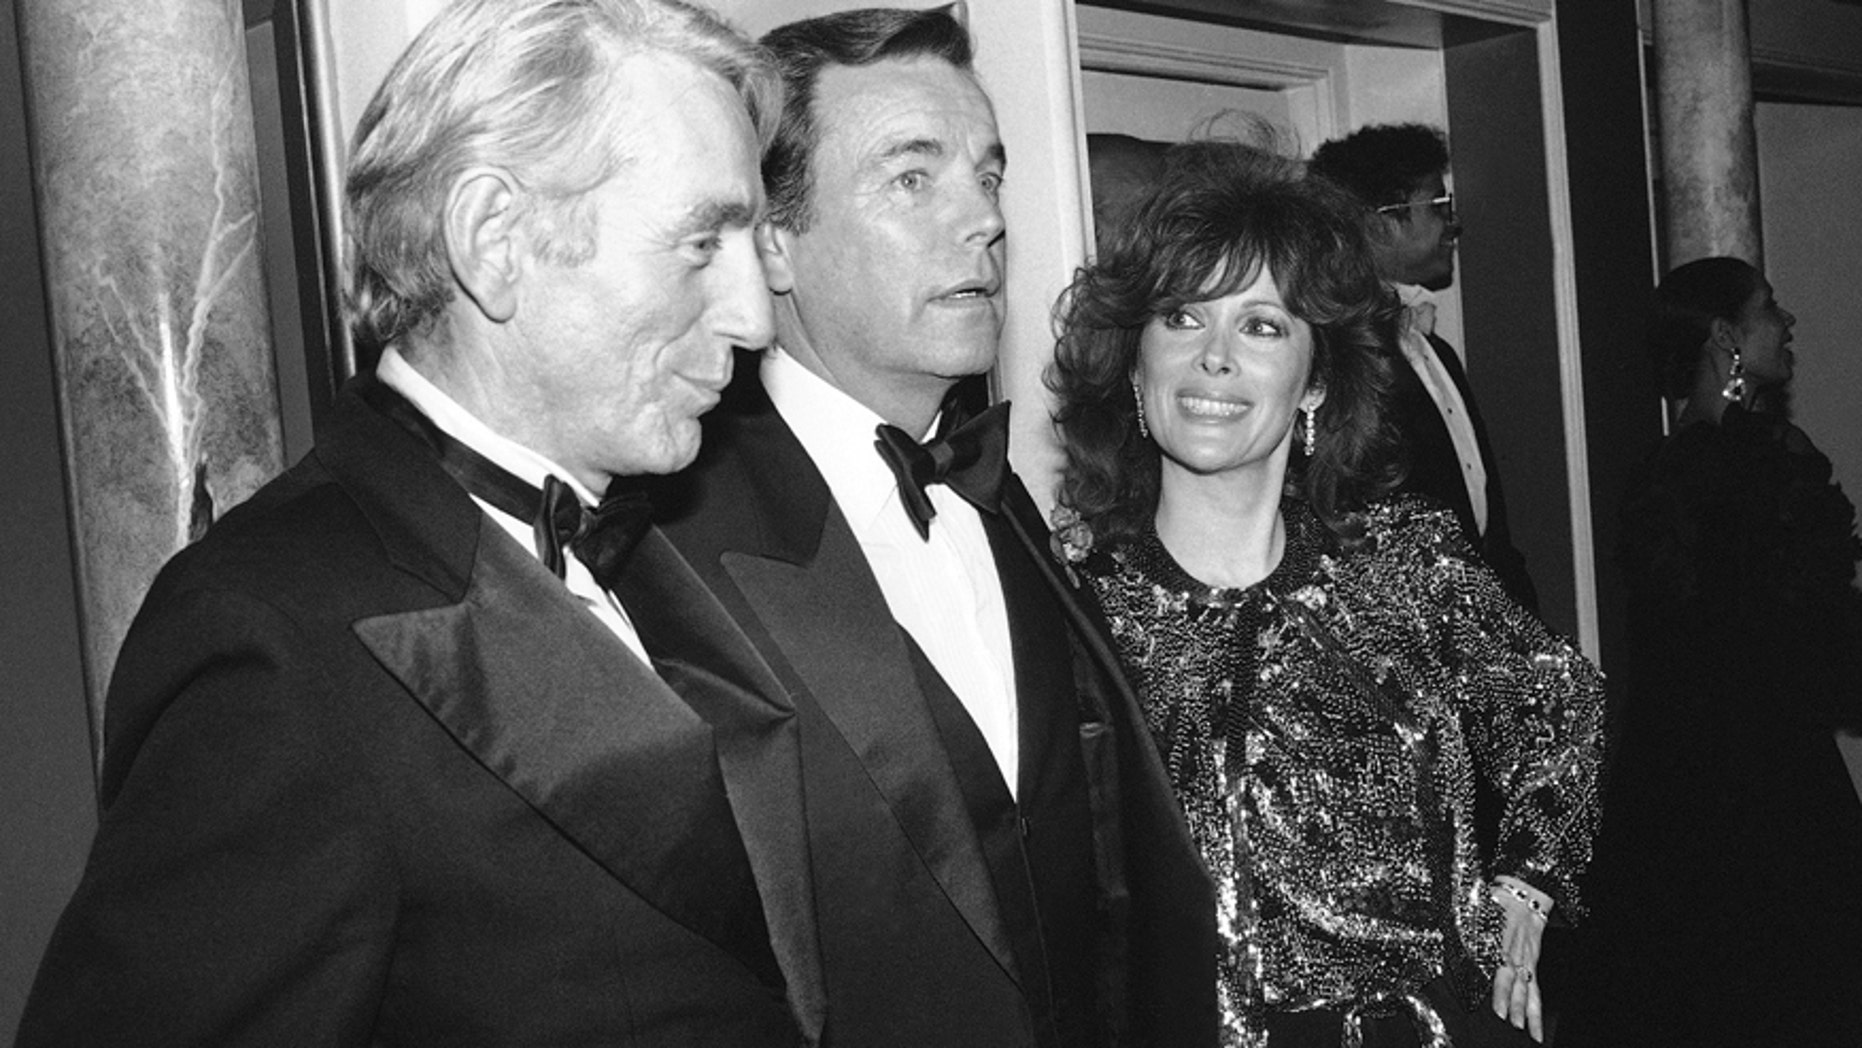 """FILE - In this Feb. 18, 1985 file photo, Jill St. John, right, with Robert Wagner, center, and Rod McKuen, left, attend a party for """"Night of 100 Stars II,"""" in New York. McKuen, the husky-voiced """"King of Kitsch"""" whose music and verse recordings won him an Oscar nomination and made him one of the best-selling poets in history, has died on Thursday, Jan. 29, 2015. He was 81."""